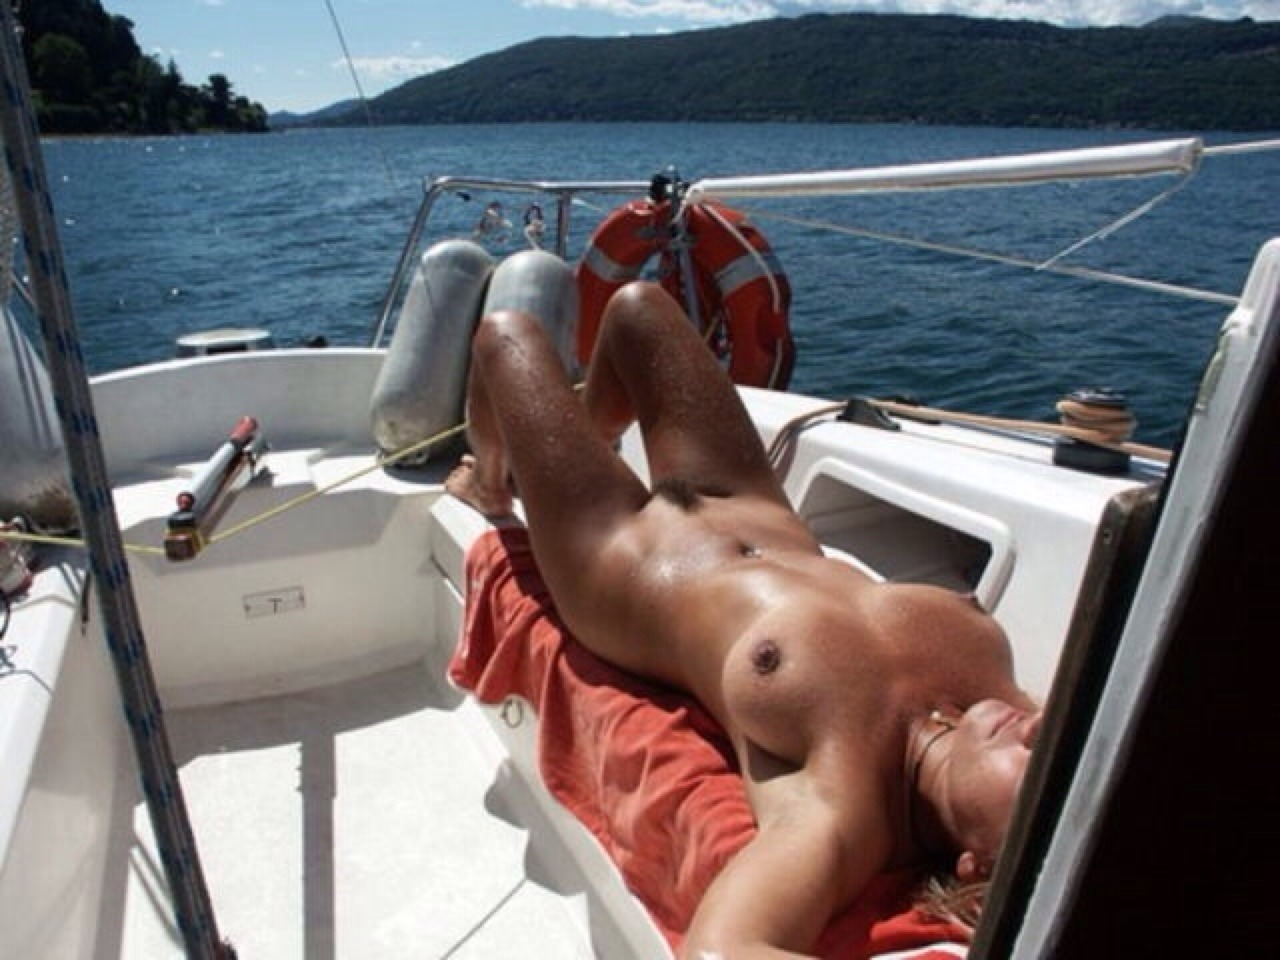 Anna and sarka nude in two girls nude on a sailing boat